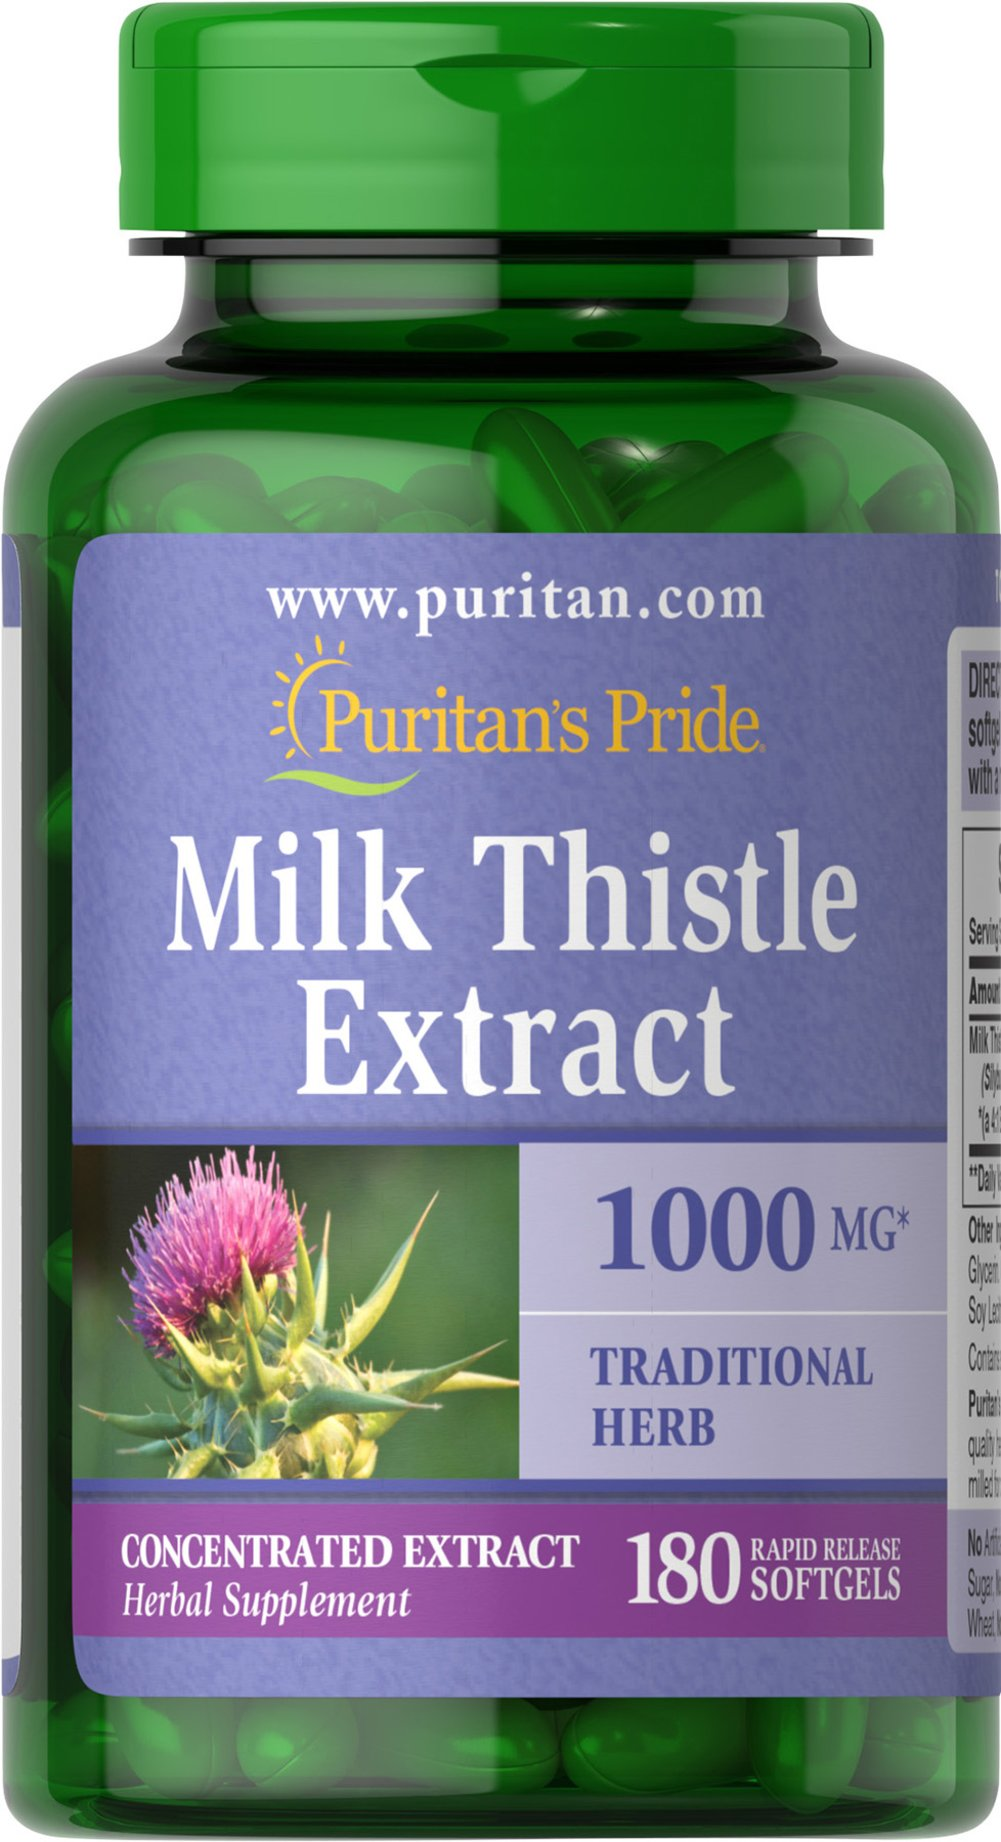 Milk Thistle 4:1 Extract 1000 mg (Silymarin) <p>The exceptional benefits of Milk Thistle are due to its powerful antioxidant properties, which help to optimize health and well being.**</p><p>Adults can take one softgel once or twice daily.</p><p>Puritan's Pride's Guarantee: We use only the finest quality herbs and spices. Each is screened and finely milled for quick release. </p> 180 Softgels 1000 mg $28.99